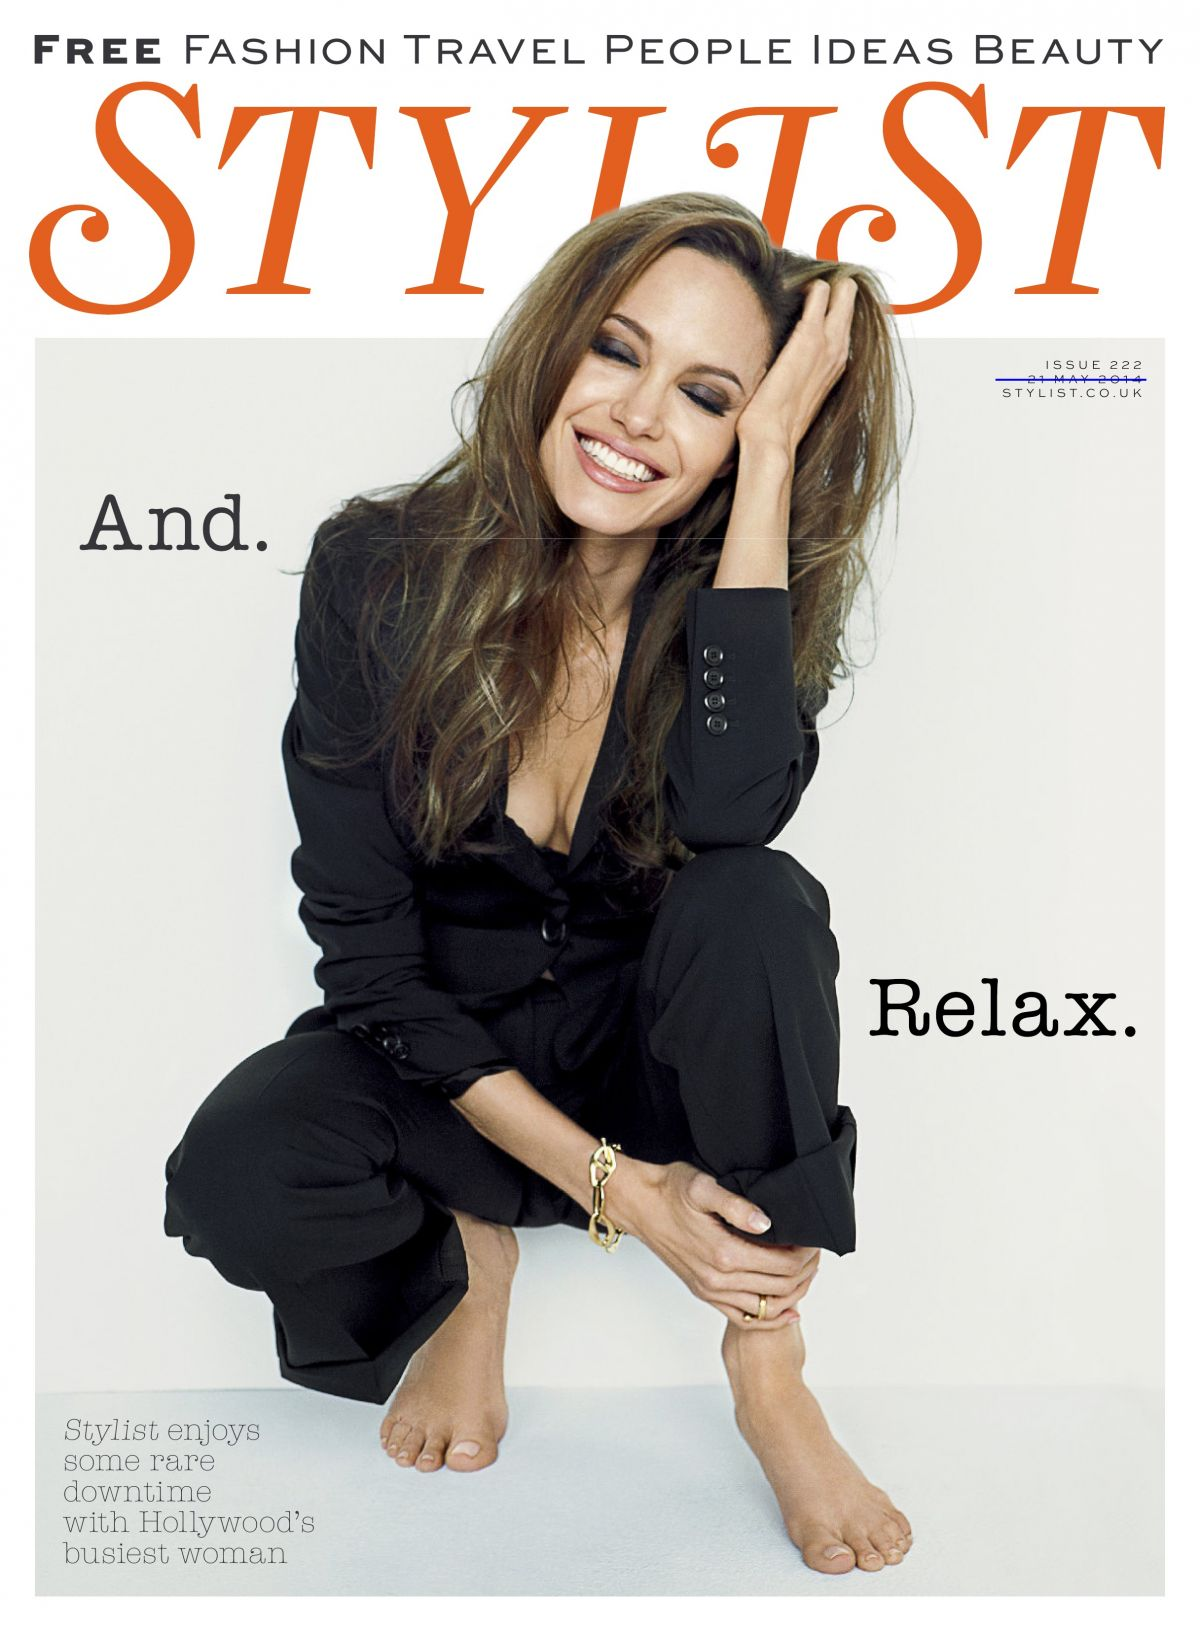 ANGELINA JOLIE in Stylist Magazine, May 21st 2014 Issue